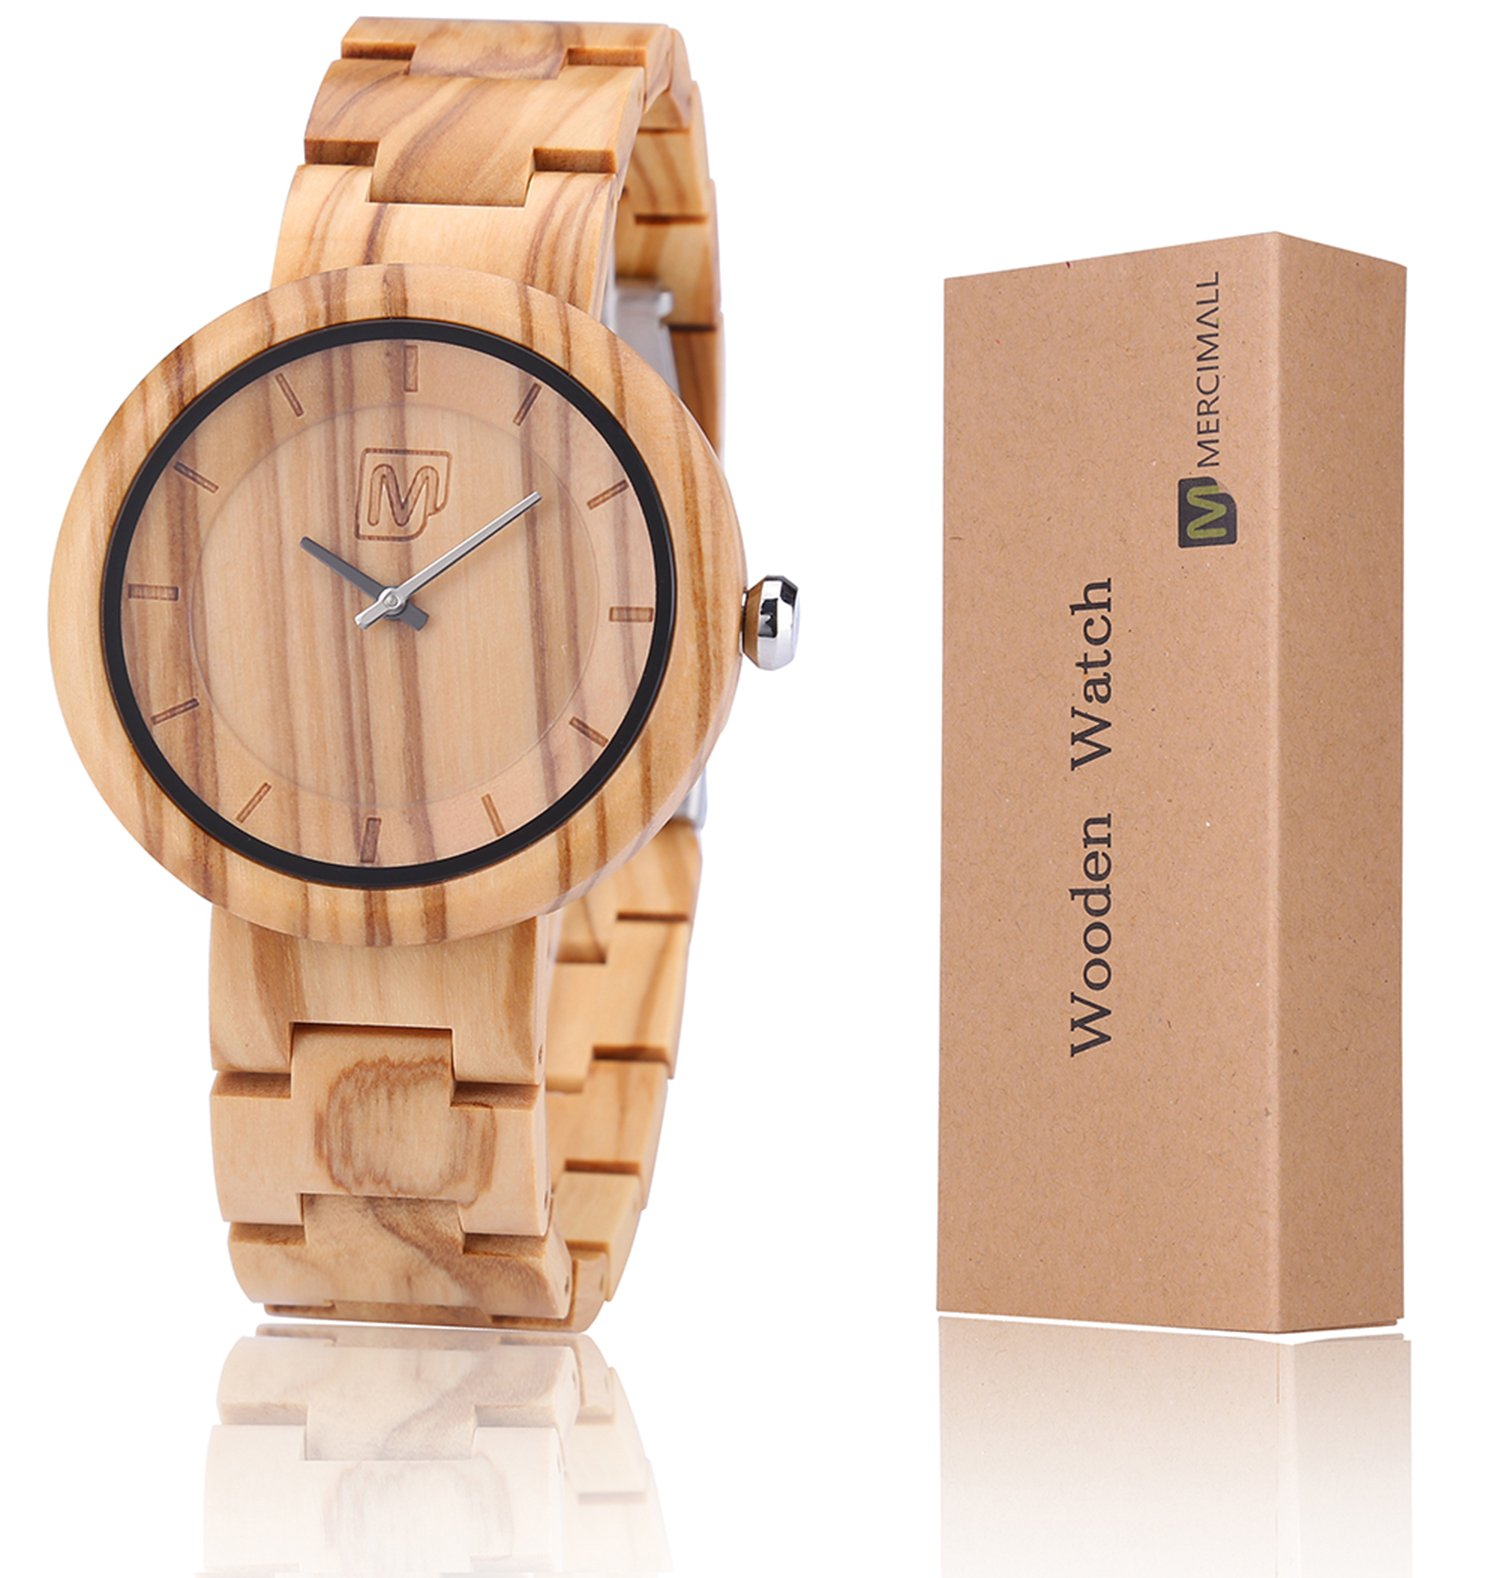 Women Wooden Wrist Watches Unisex Weekender 42mm Watch Mercimall Quartz Analog Wood Watch for Girlfriend Personalized Groomsmen Watch